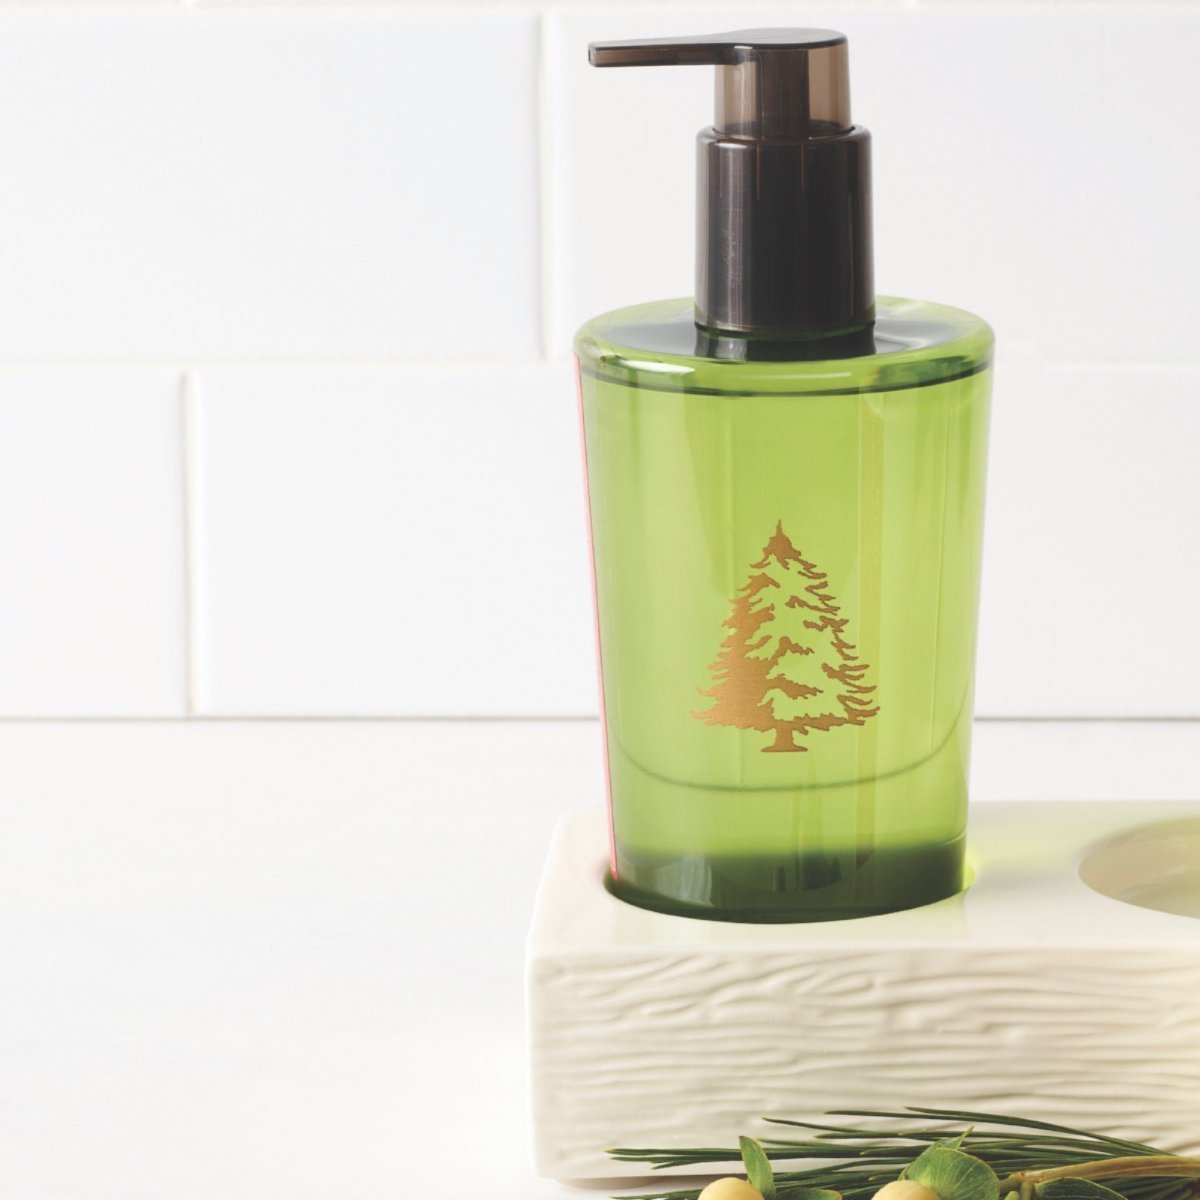 Thymes Frasier Fir Home Care Collection